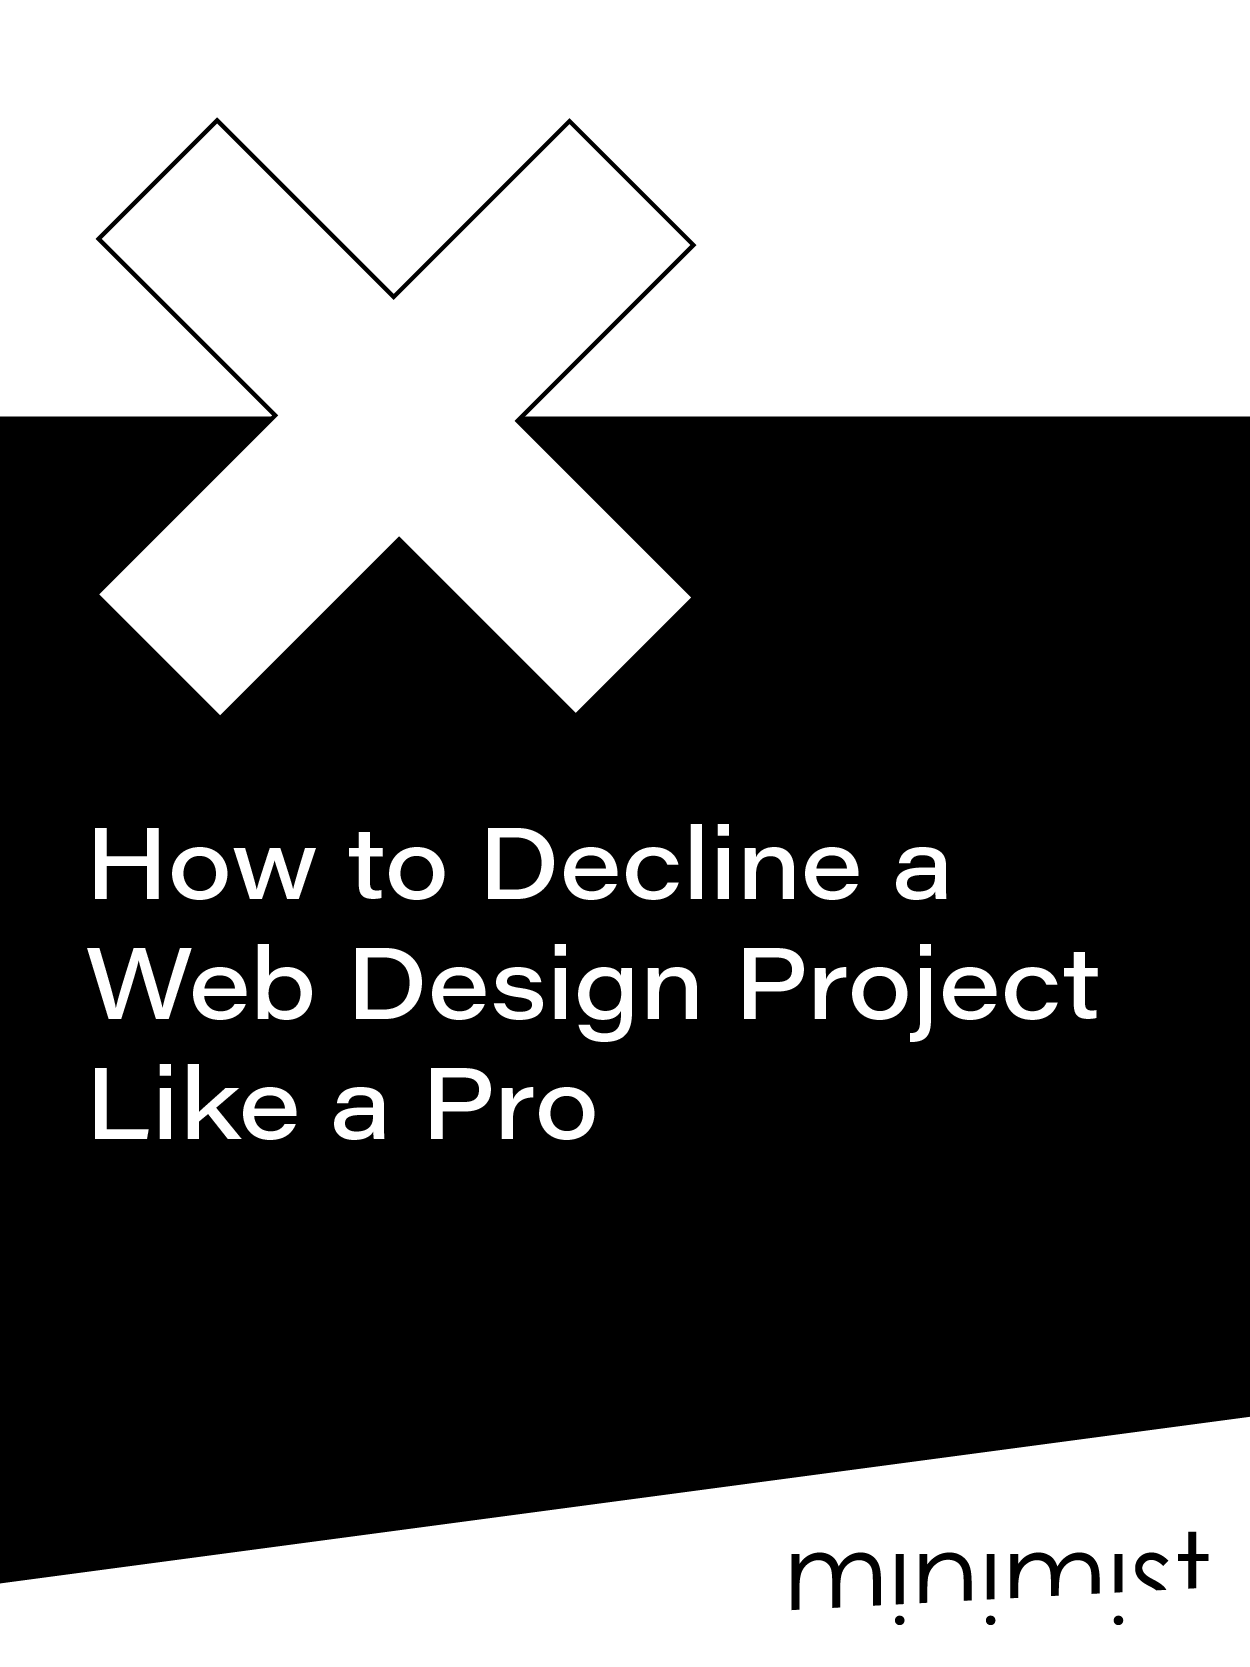 How to Decline a Web Design Project Like a Pro